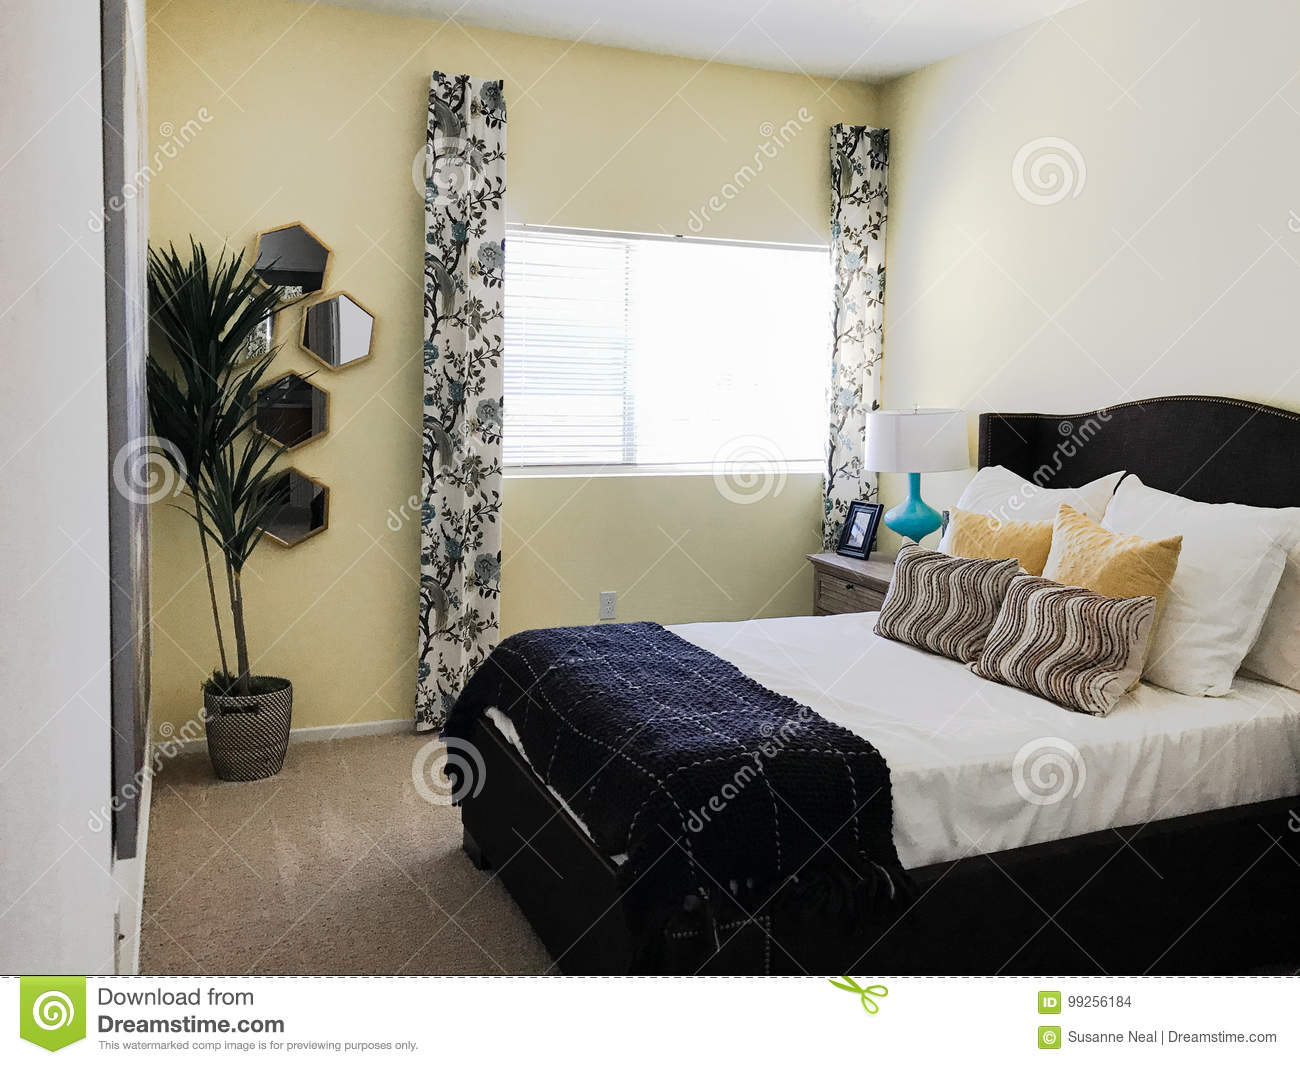 Clean Simple Small Bedroom Stock Photo Image Of Pretty 99256184